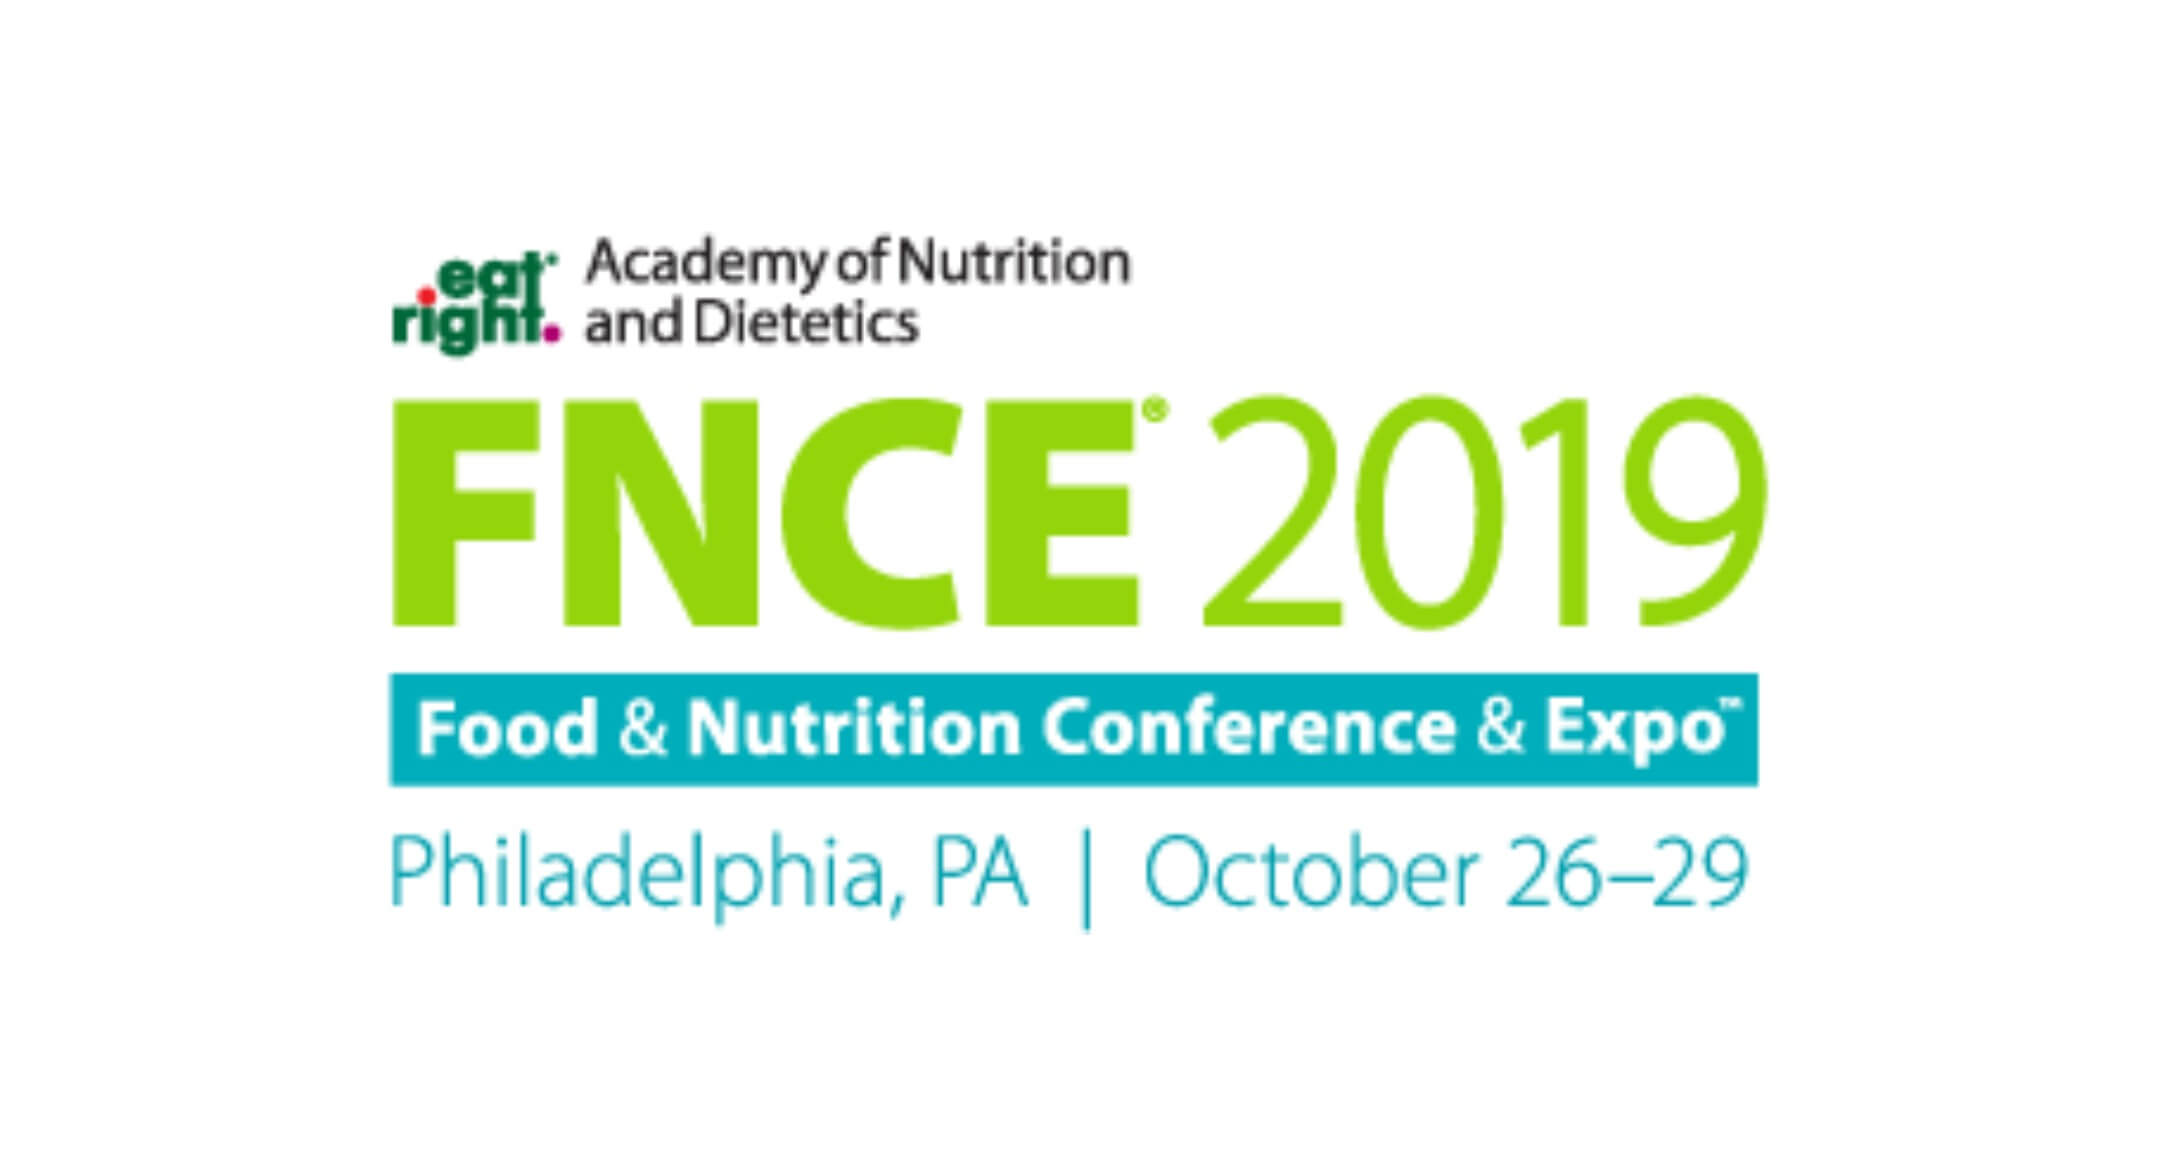 Food & Nutrition Conference & Expo 2019